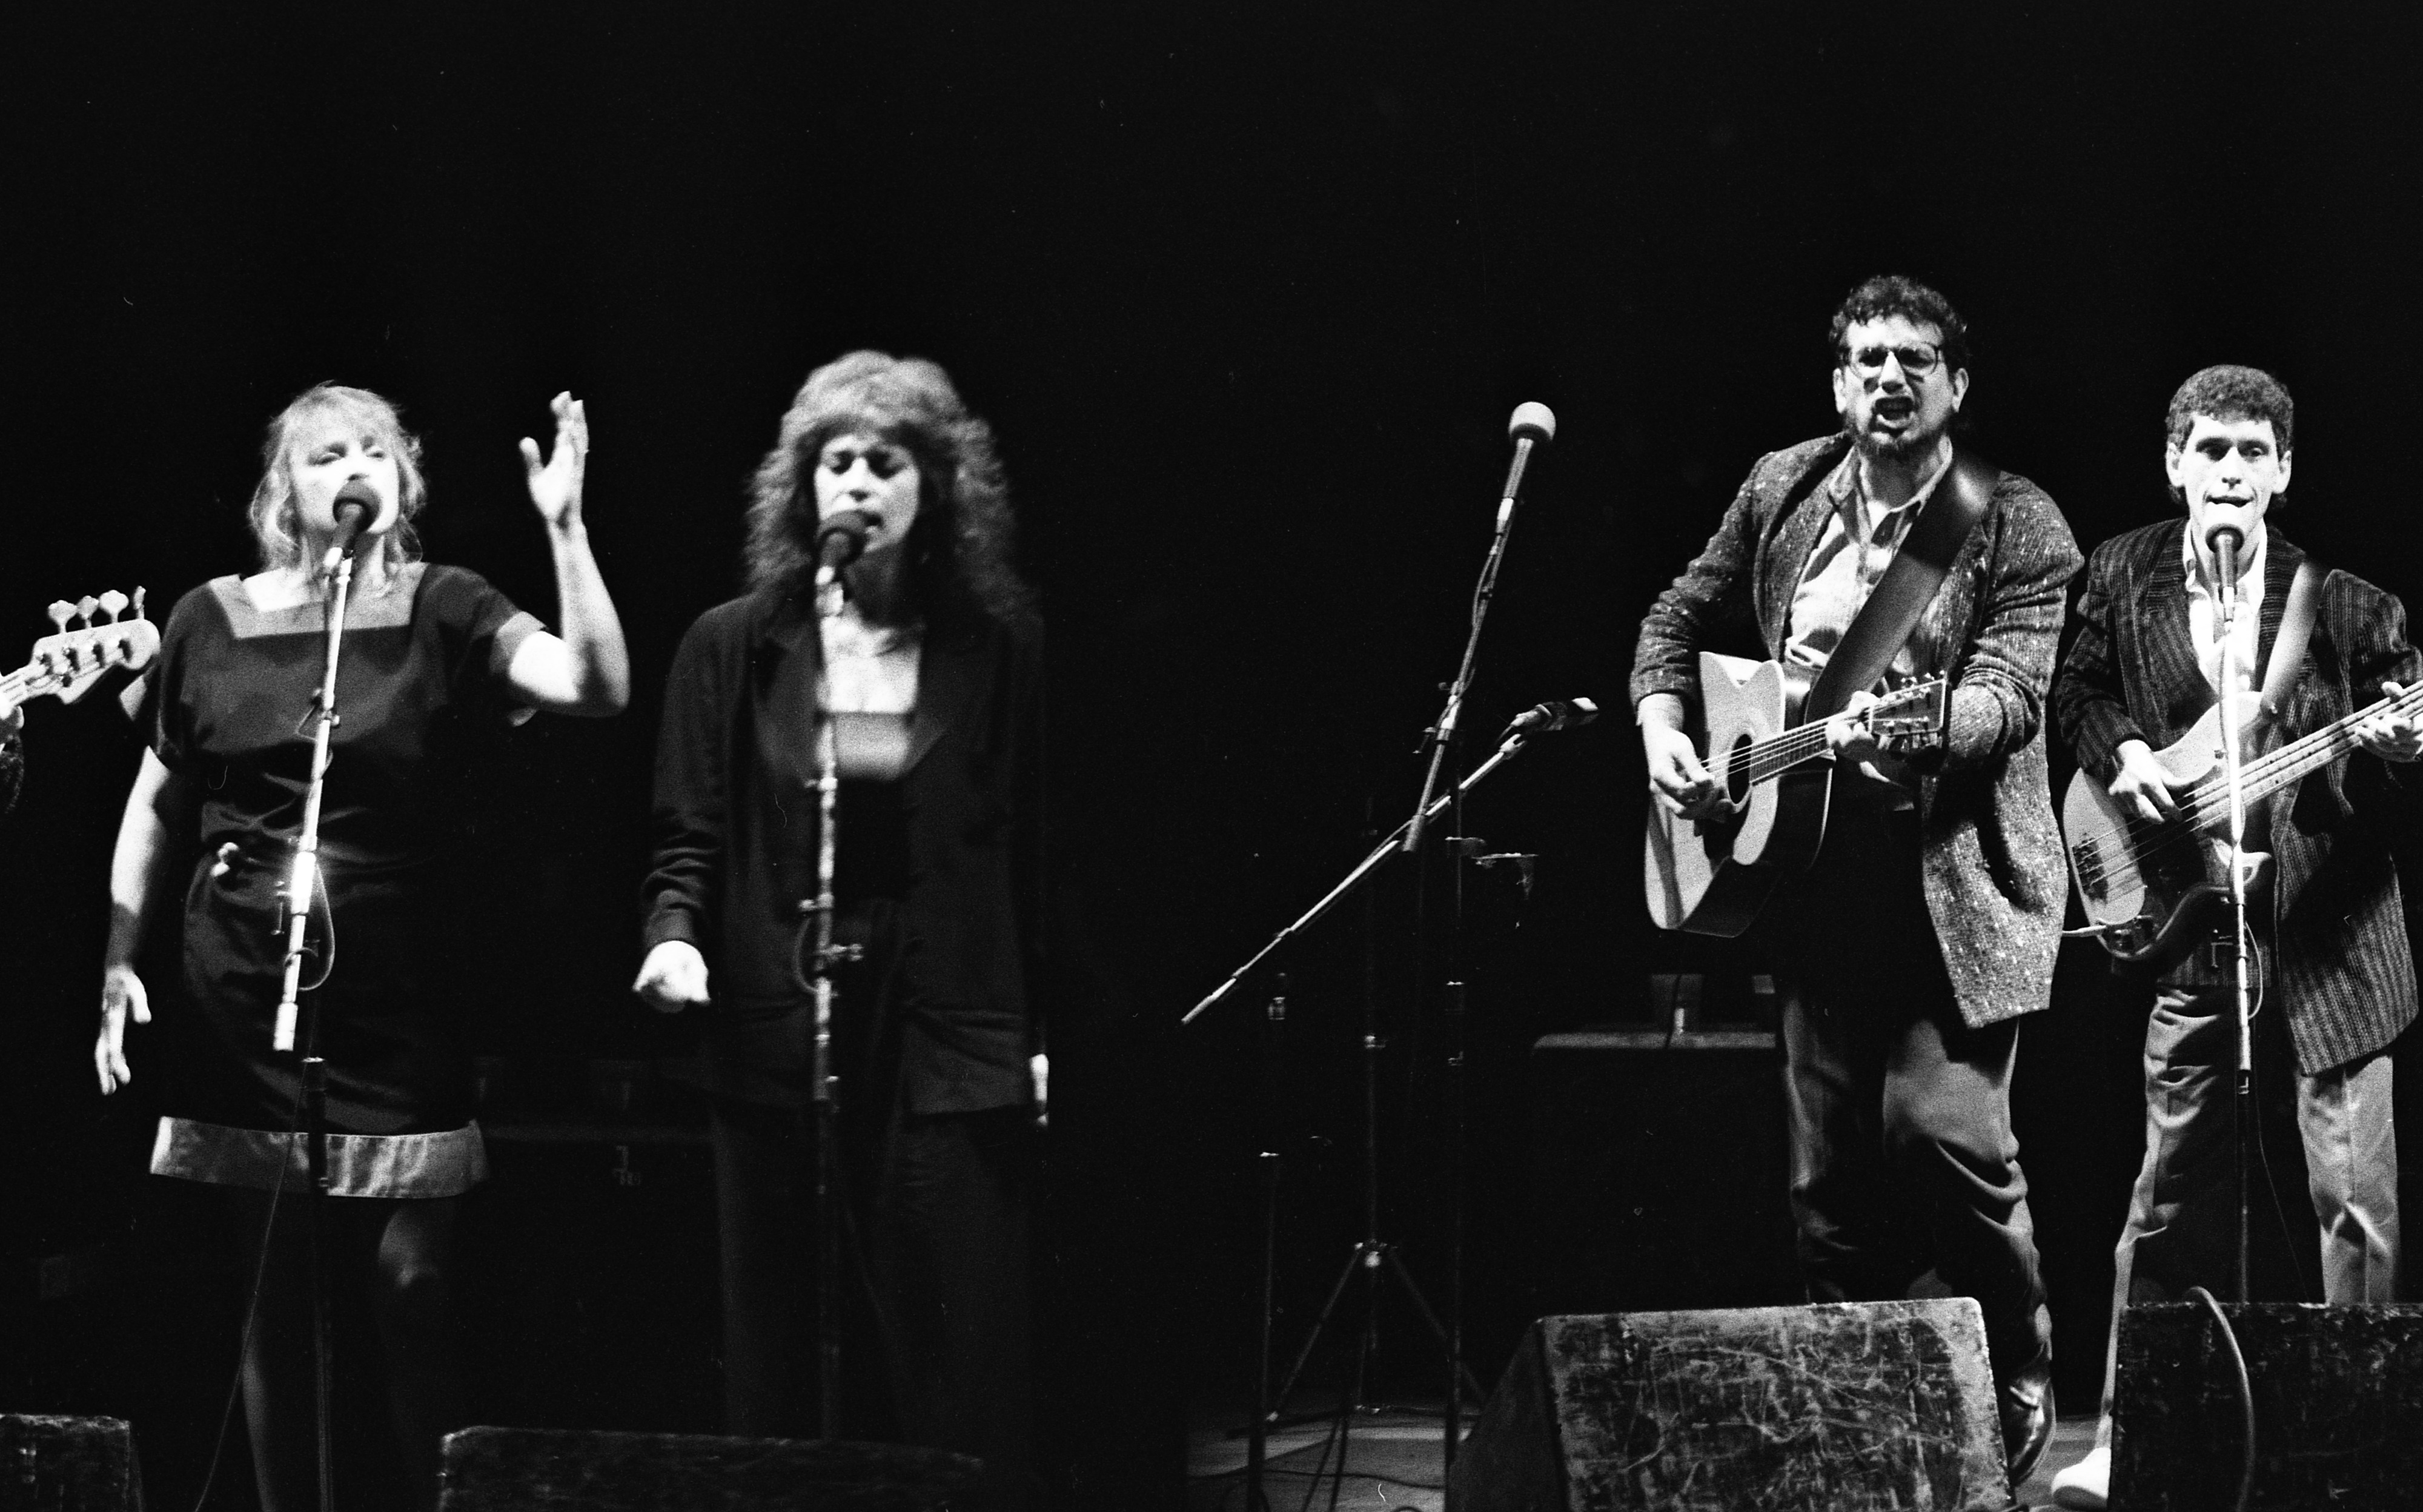 Ann Arbor Folk Festival, January 1989 image